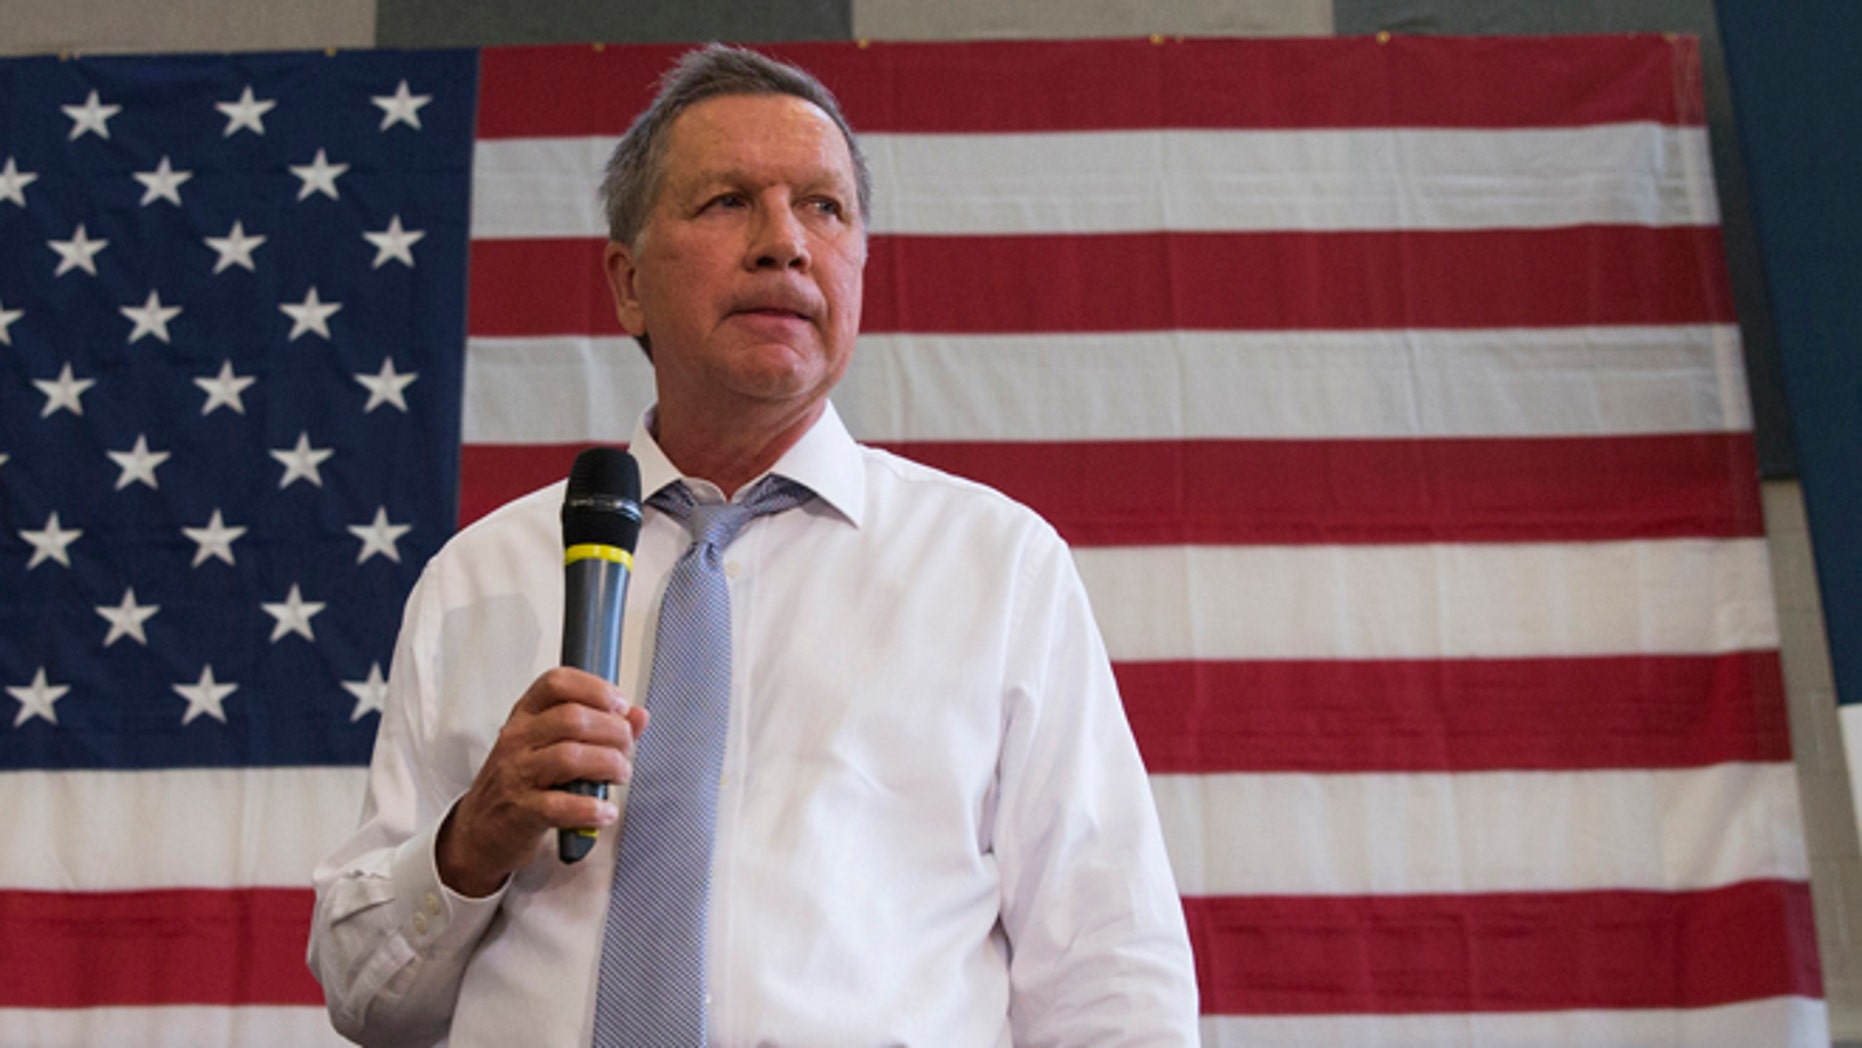 Ohio Gov. John Kasich at Thomas farms Community Center in Rockville, Md. on April 25, 2016.